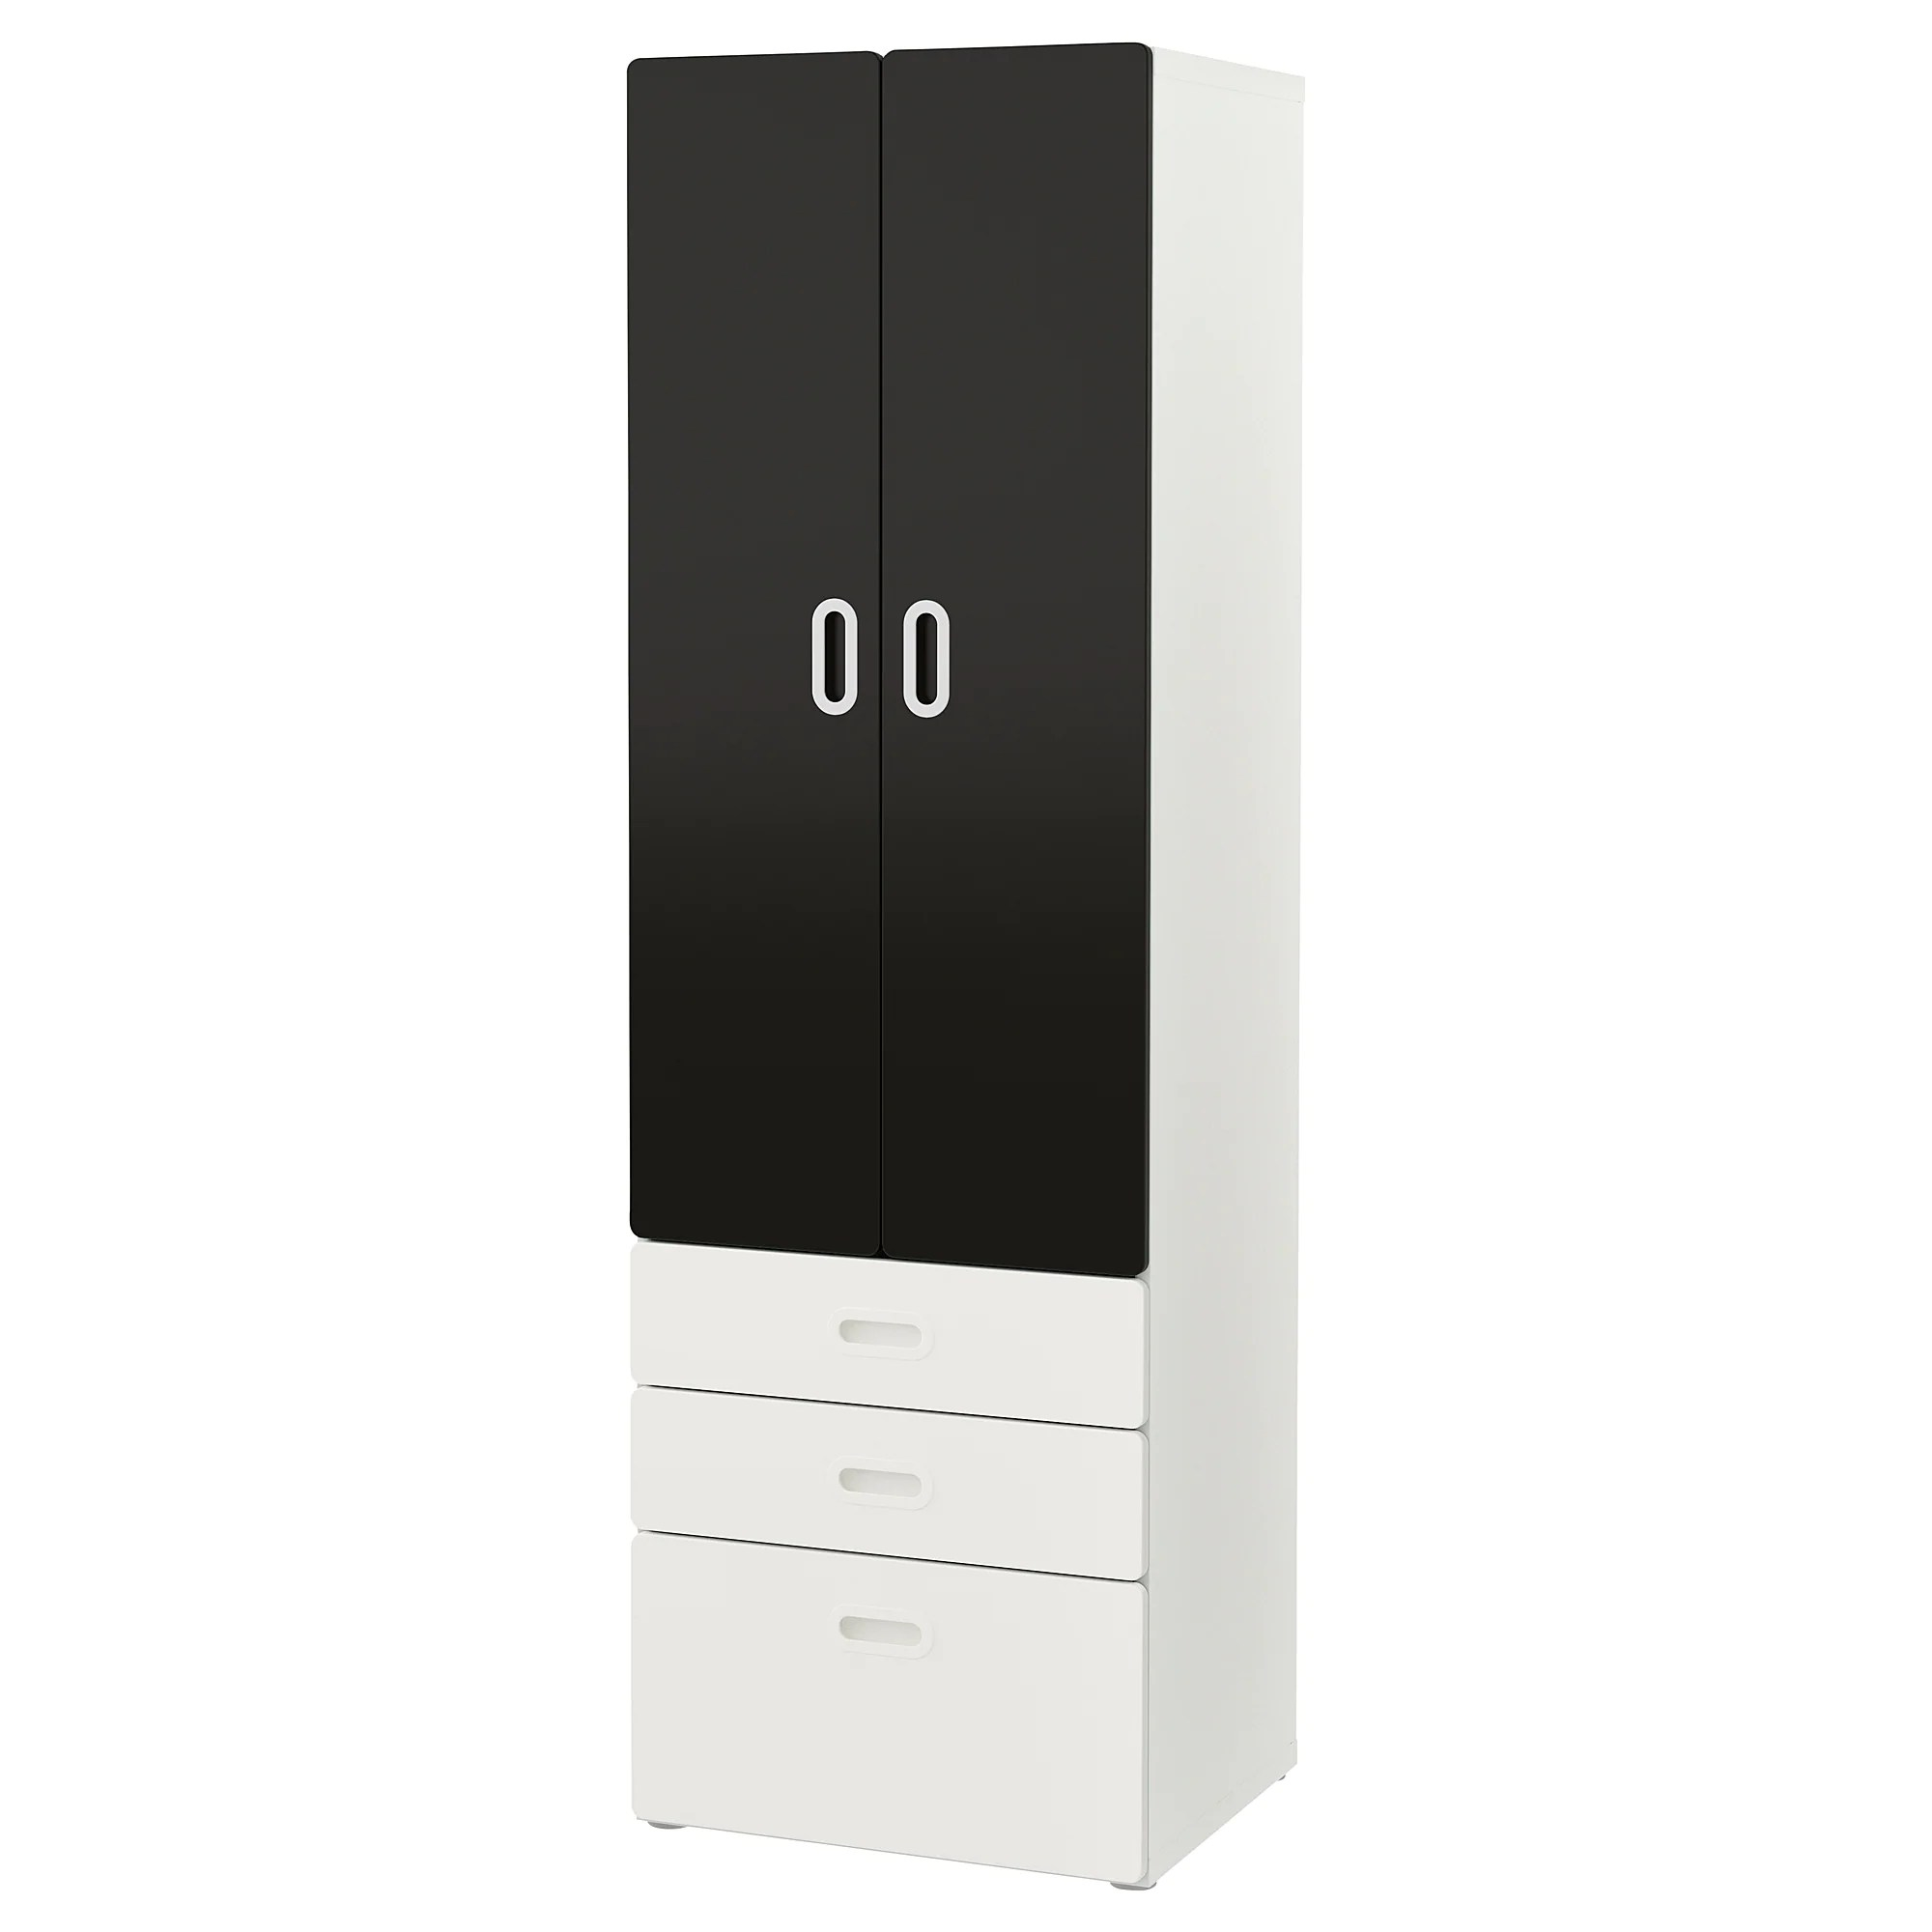 Ikea Wardrobe Event 2019 Stuva Fritids Wardrobe White Blackboard Surface Ikea